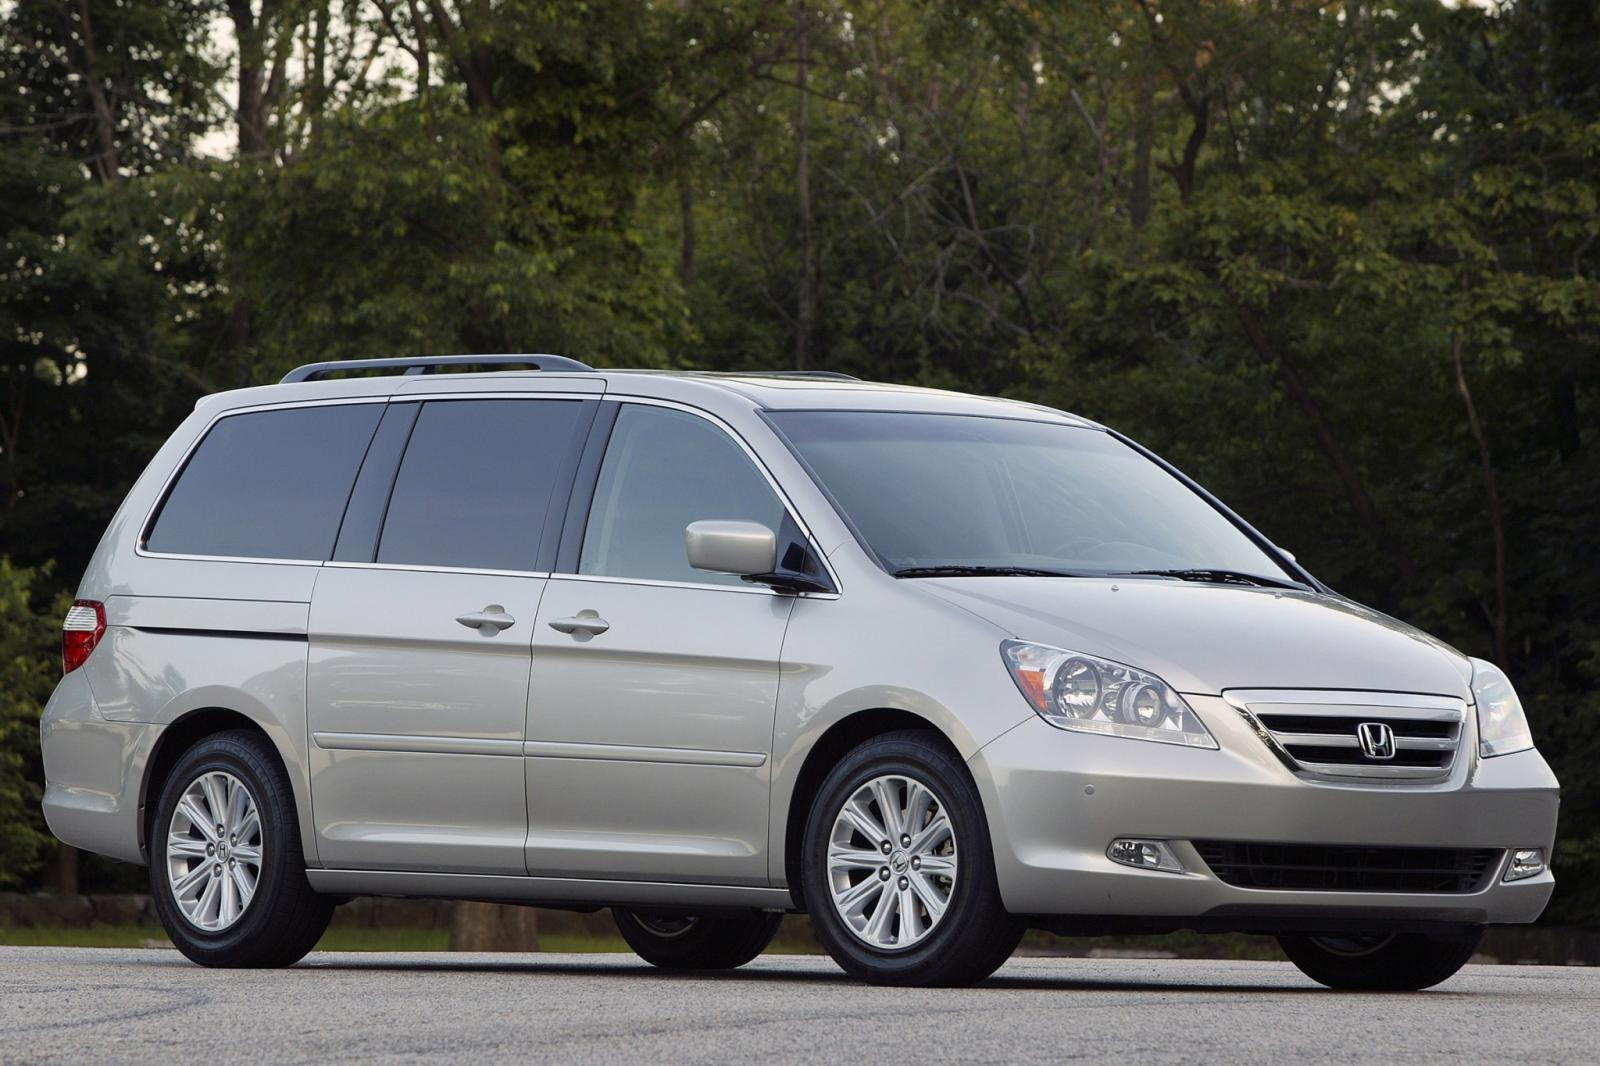 2007 honda odyssey information and photos zombiedrive. Black Bedroom Furniture Sets. Home Design Ideas